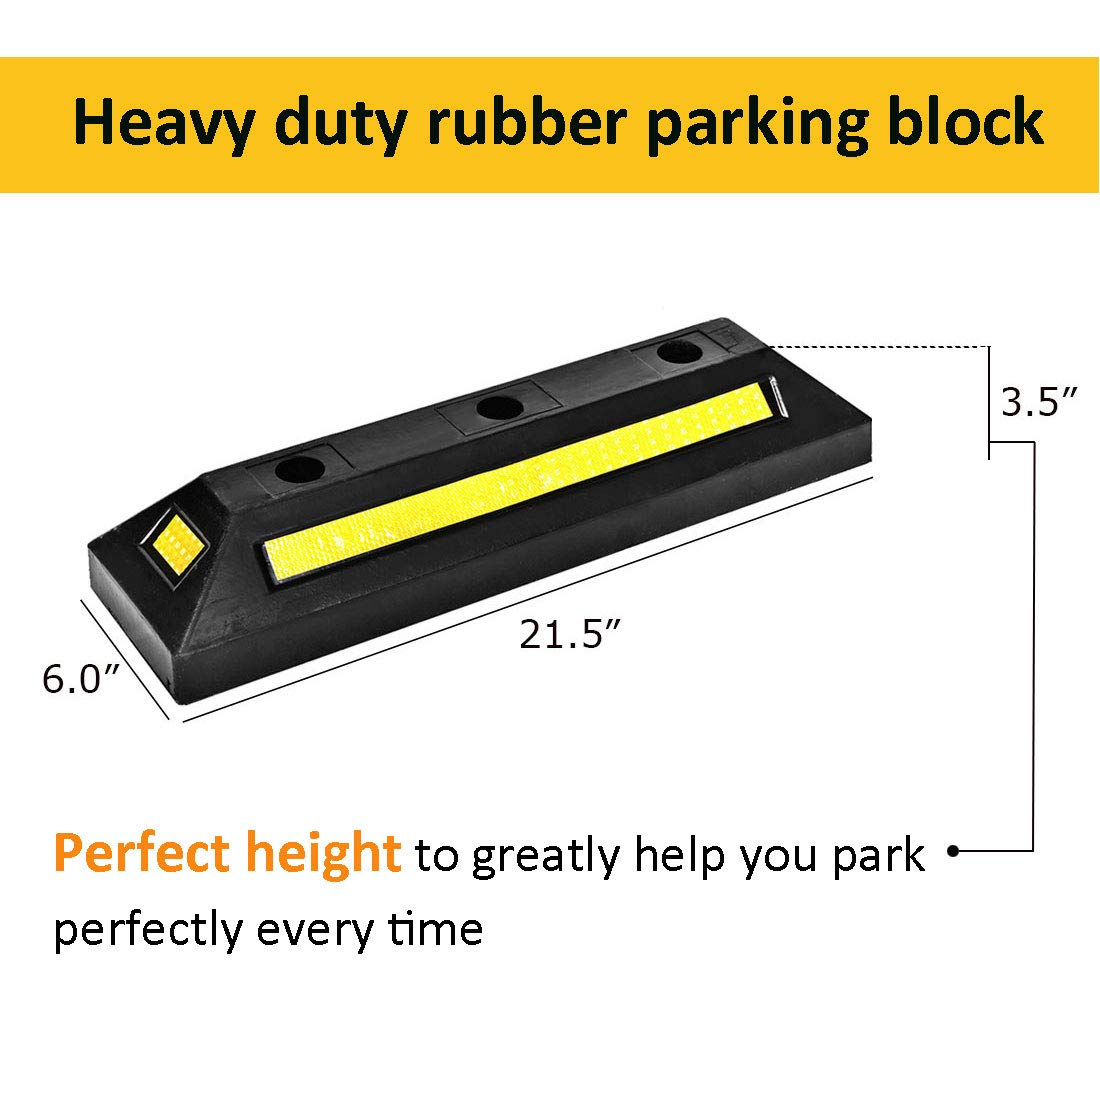 Cozylifeunion 2 Pack Heavy Duty Rubber Parking Blocks Curb Guide Car Garage Wheel Stop Stoppers for Car, Truck, RV, Trailer, and Garage by Cozylifeunion (Image #2)